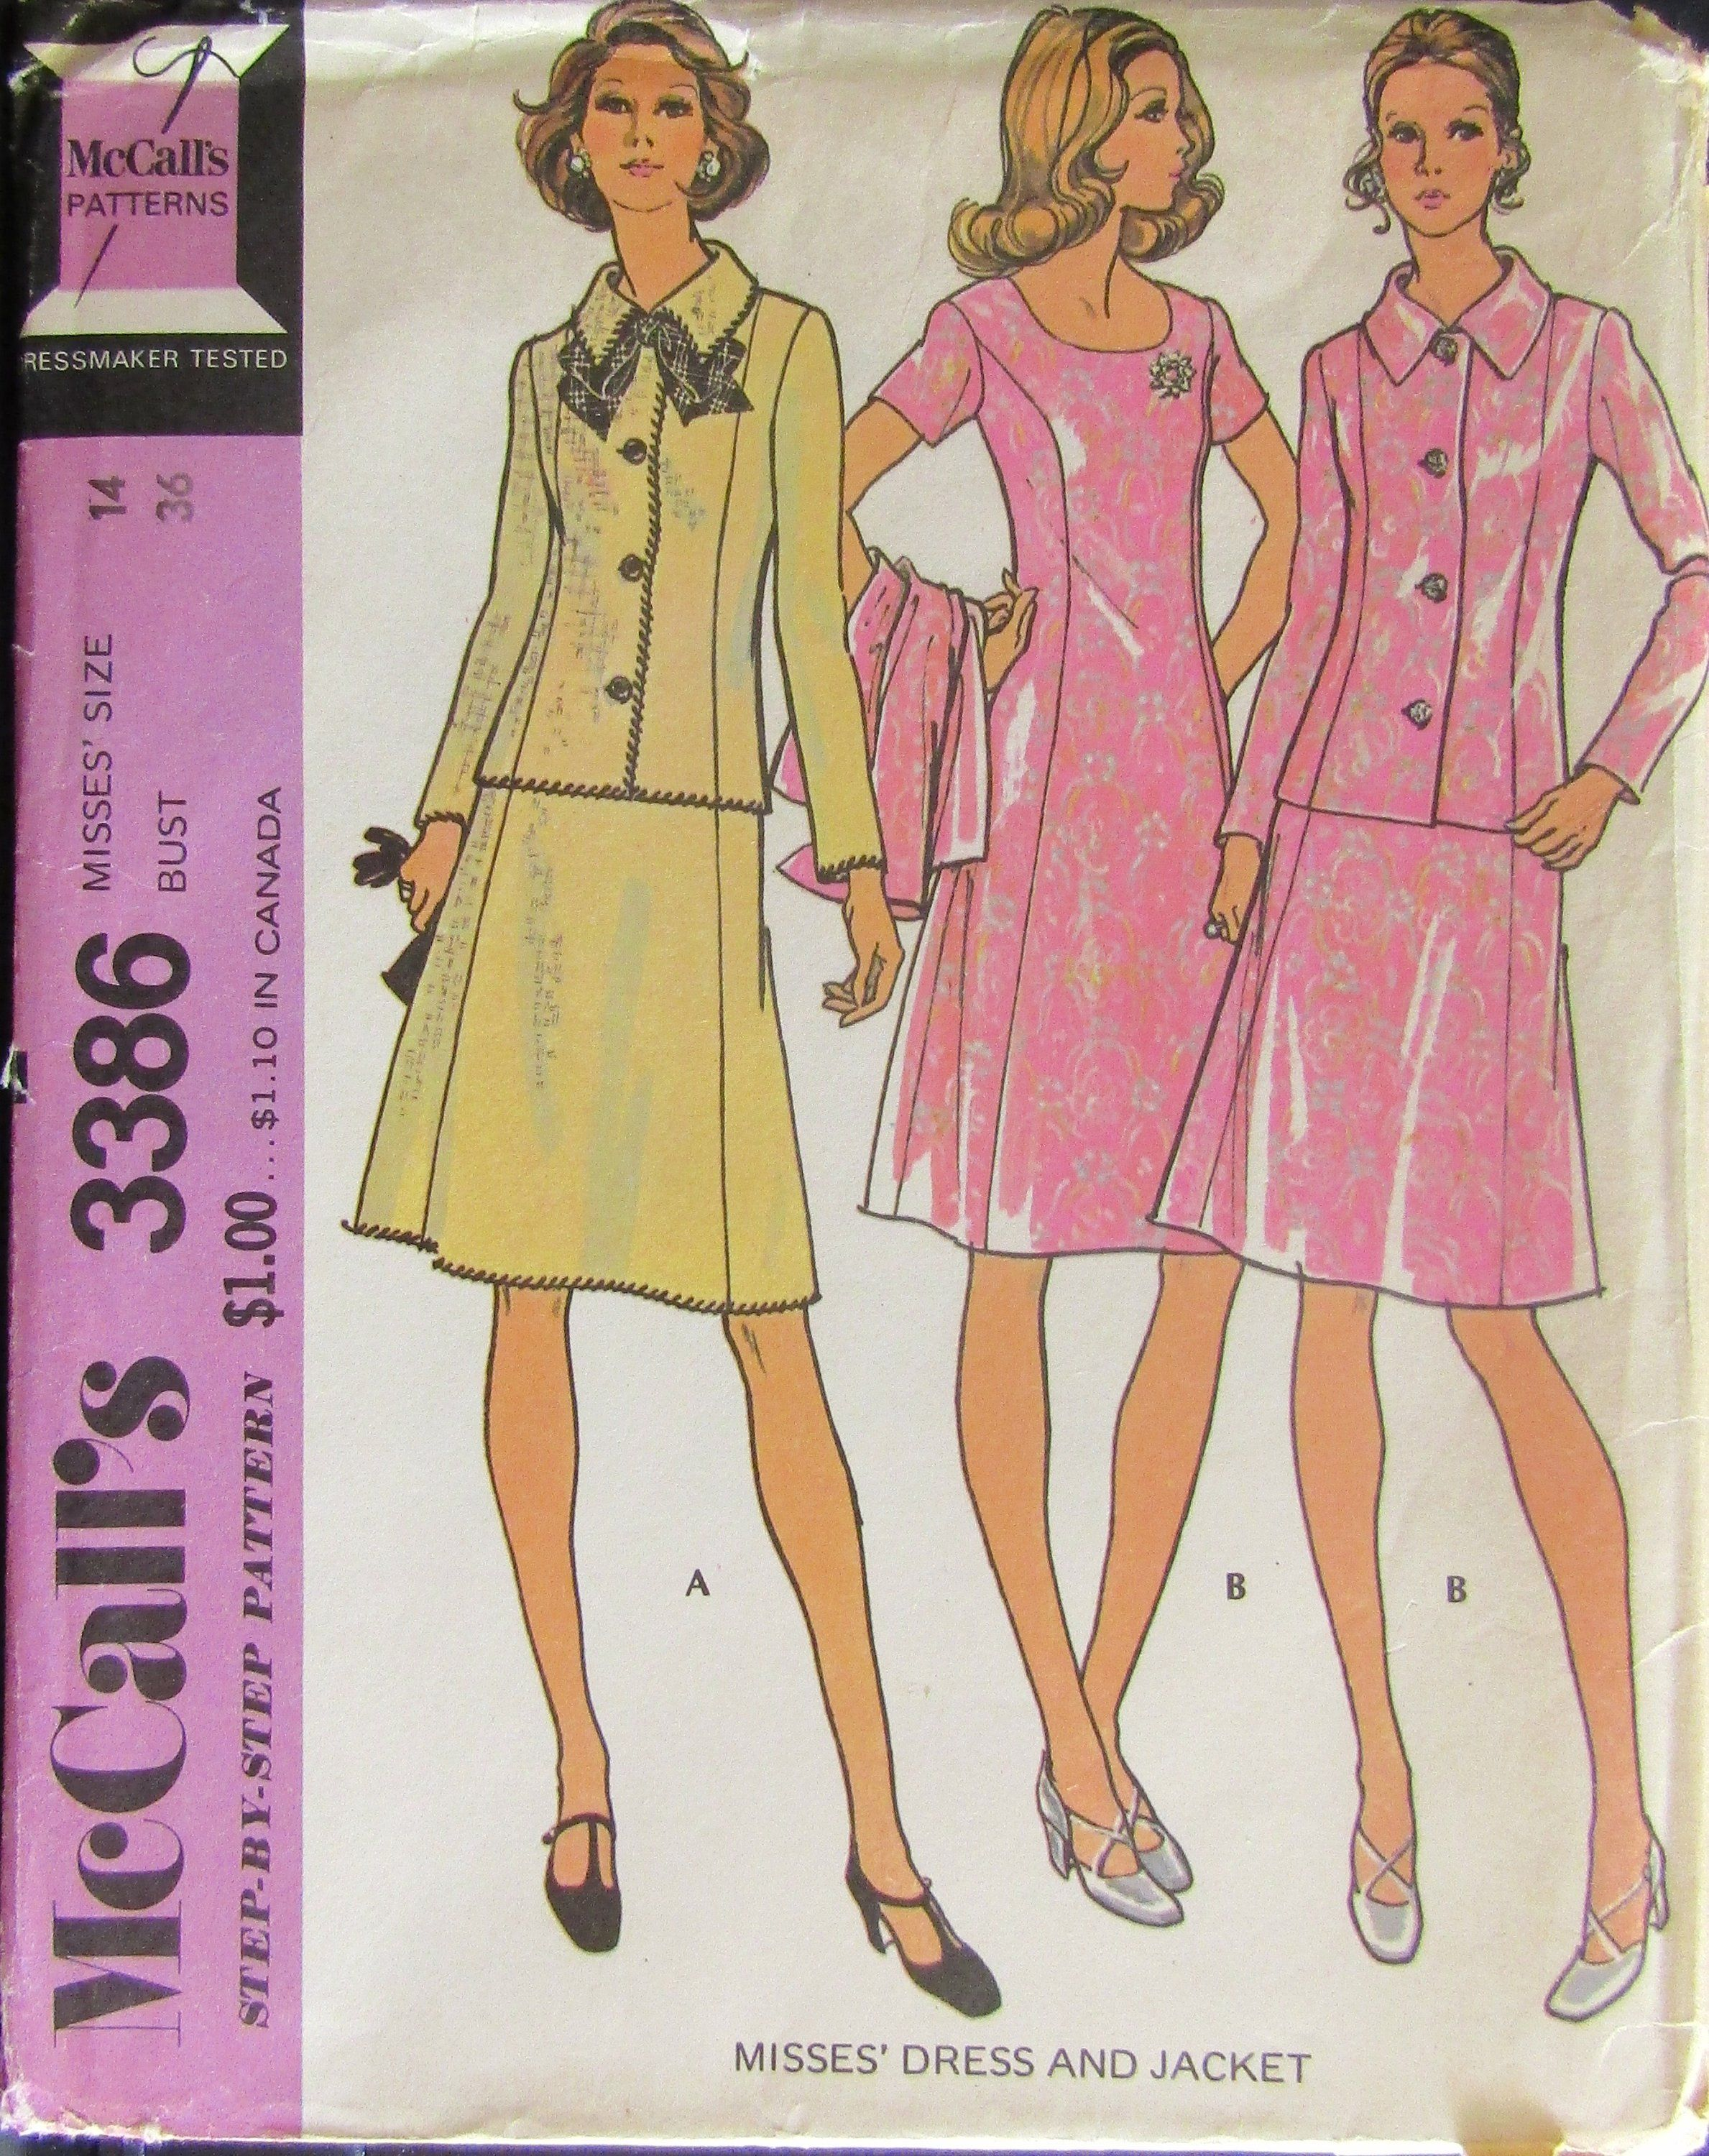 d4a4f1ab8c McCalls 3386 Misses Dress   Jacket Sewing Pattern Size 14 Bust 36 Uncut by  SimpsonDesignsStudio on Etsy